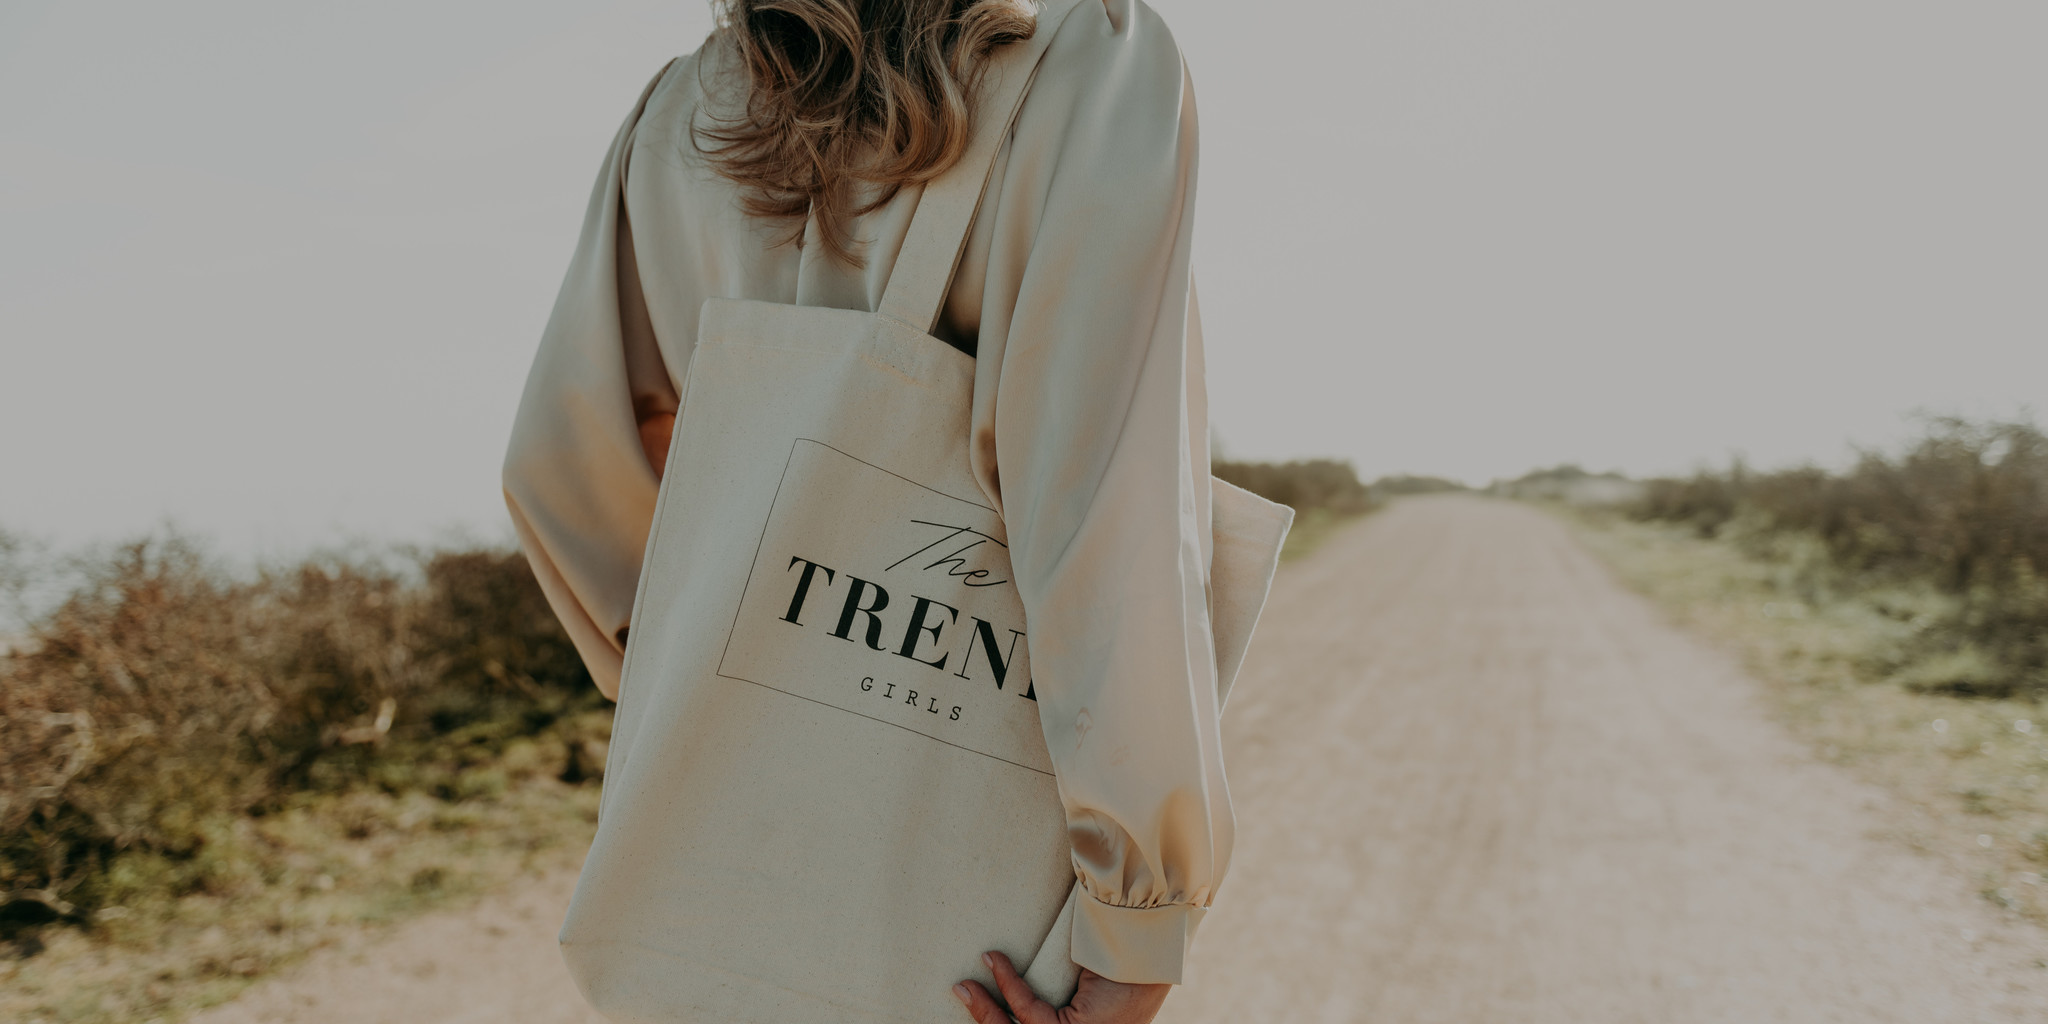 The Trend Girls - over ons